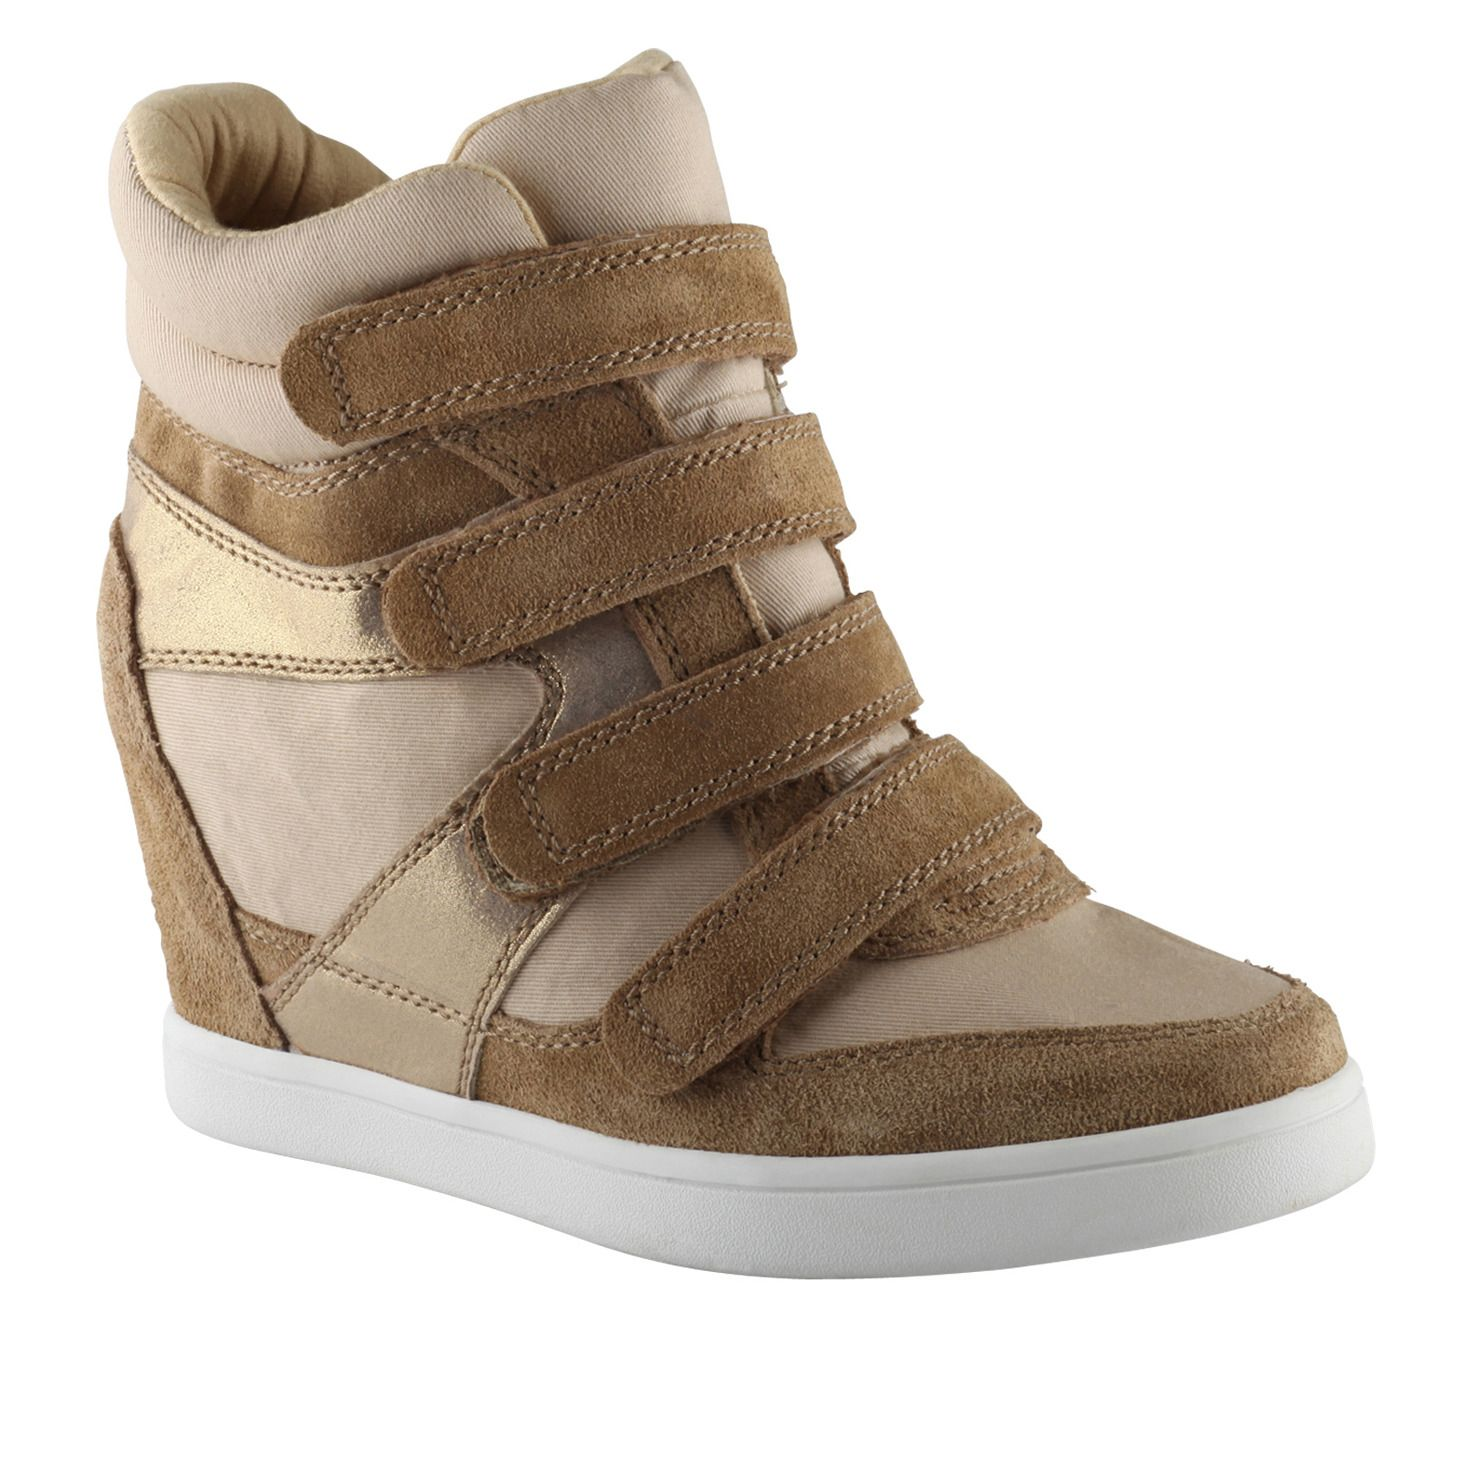 SNEAKER+WEDGE+FROM+ALDO+WITH+A+HINT+OF+METALLIC+GOLD